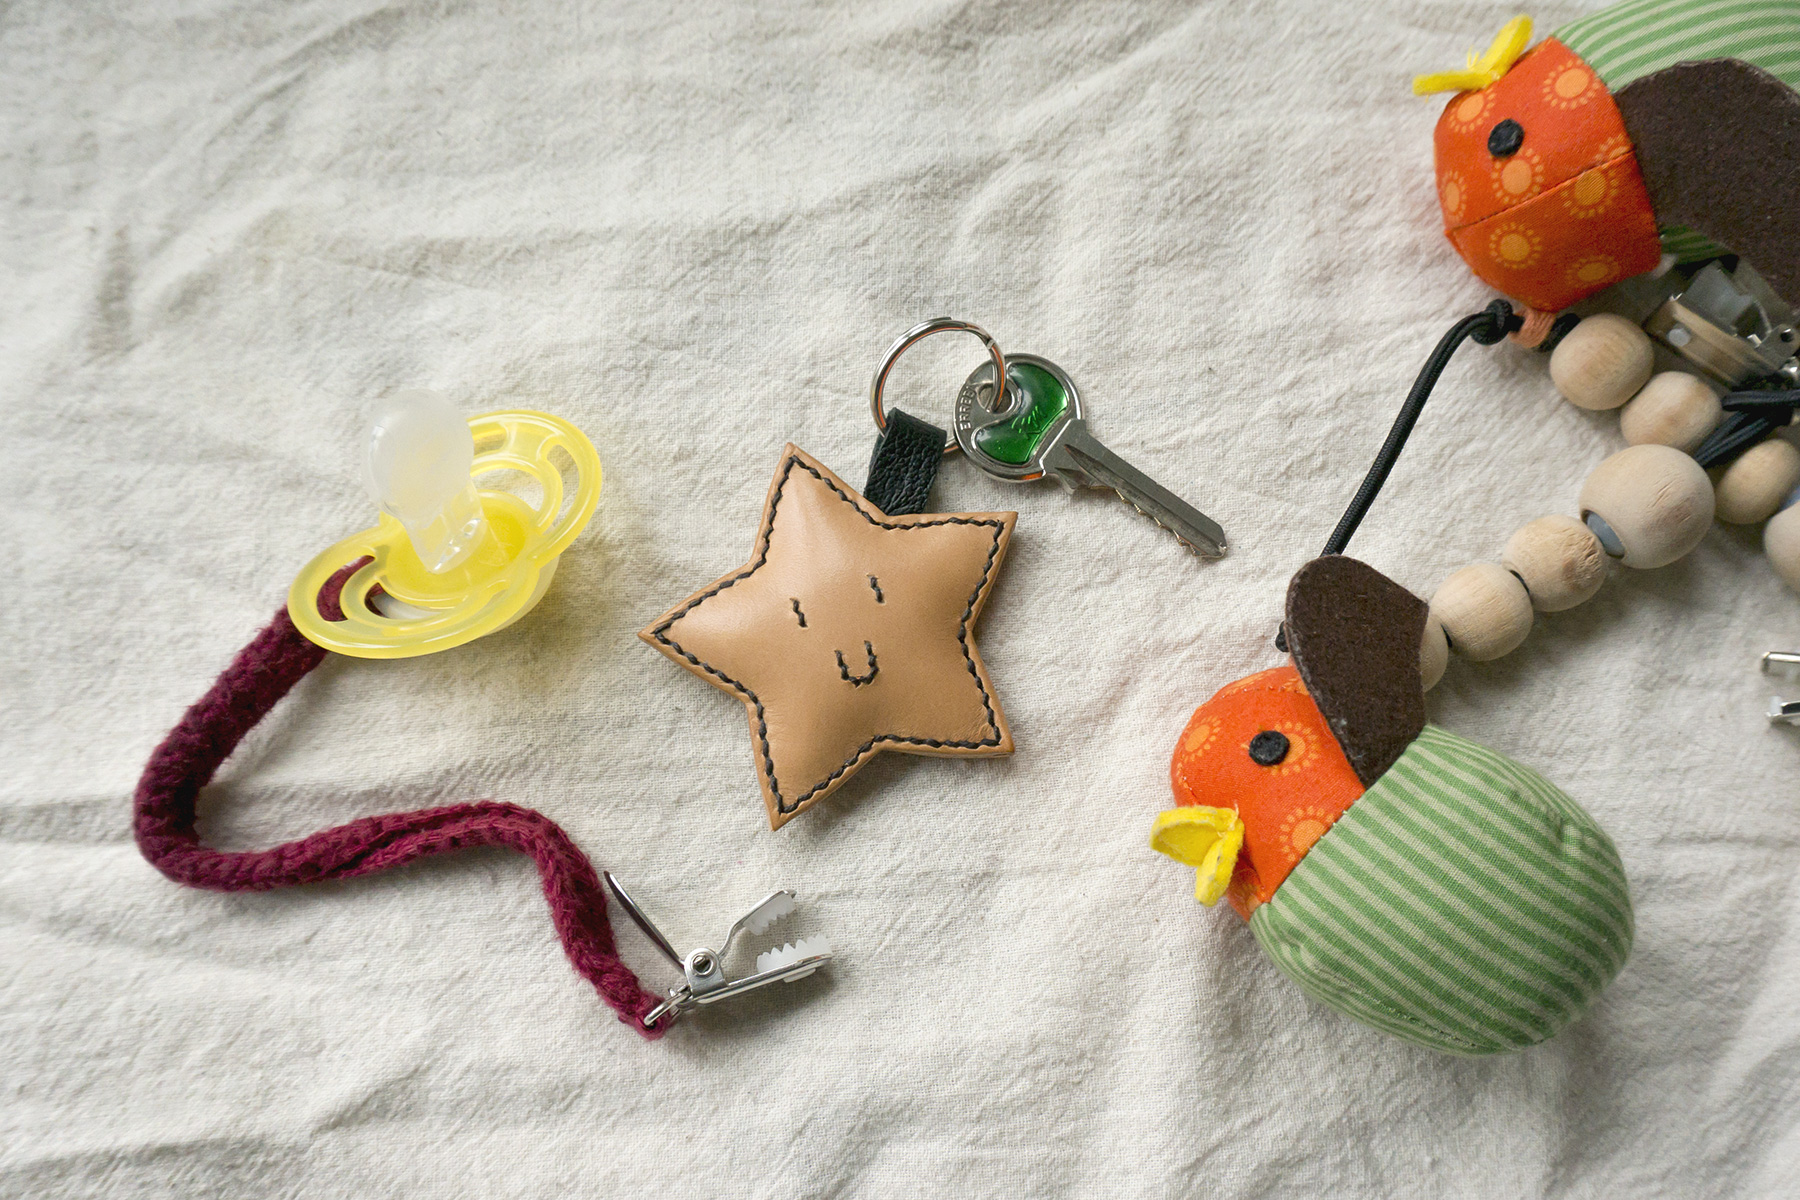 leatherwork leather star key keychain baby toy stitching sewing handmade